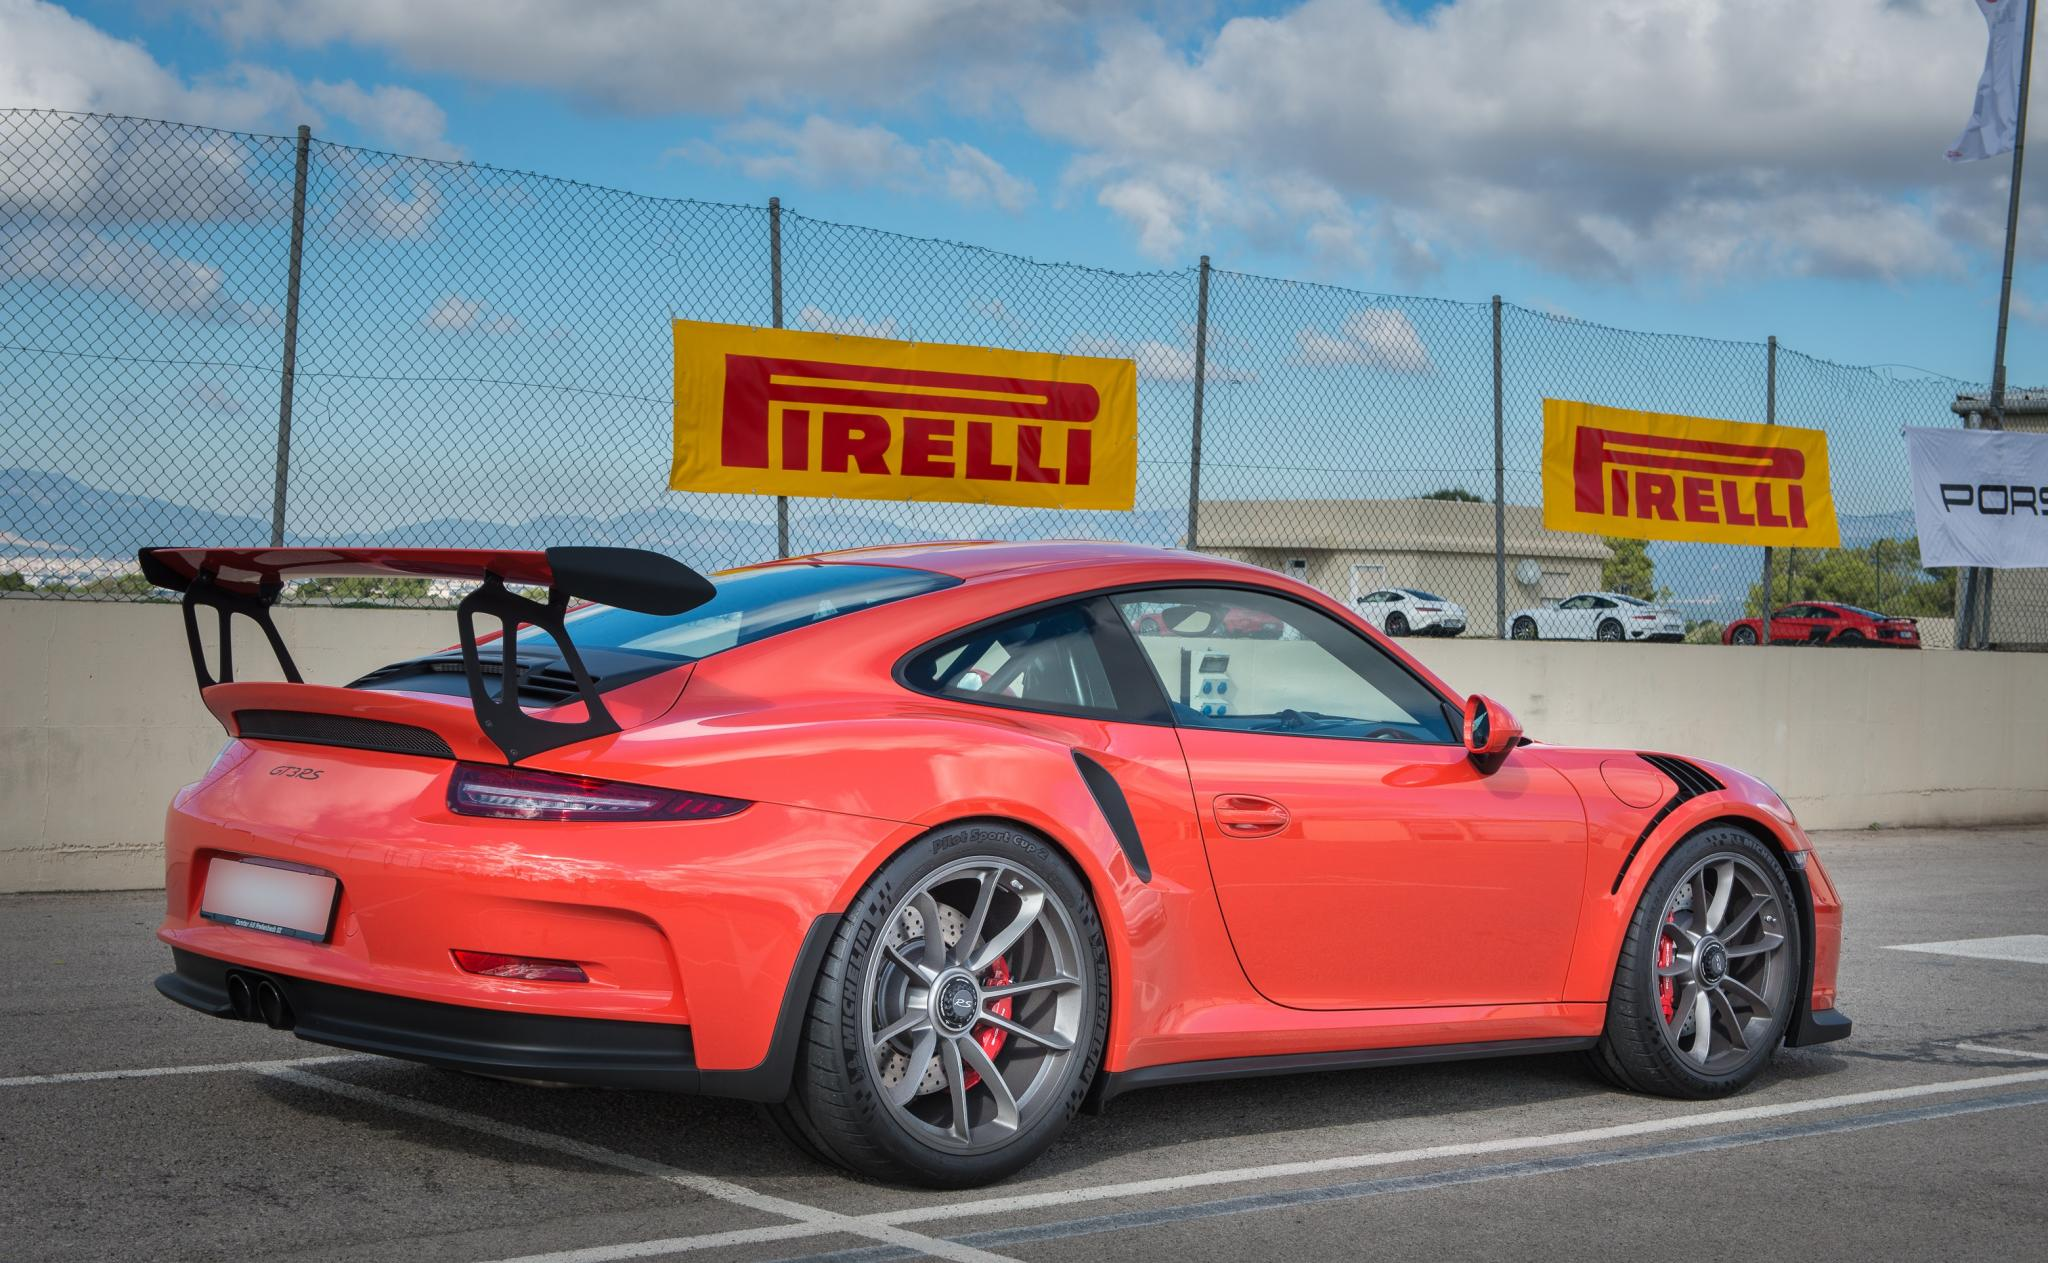 It's a GT3RS but still a 911 in essence